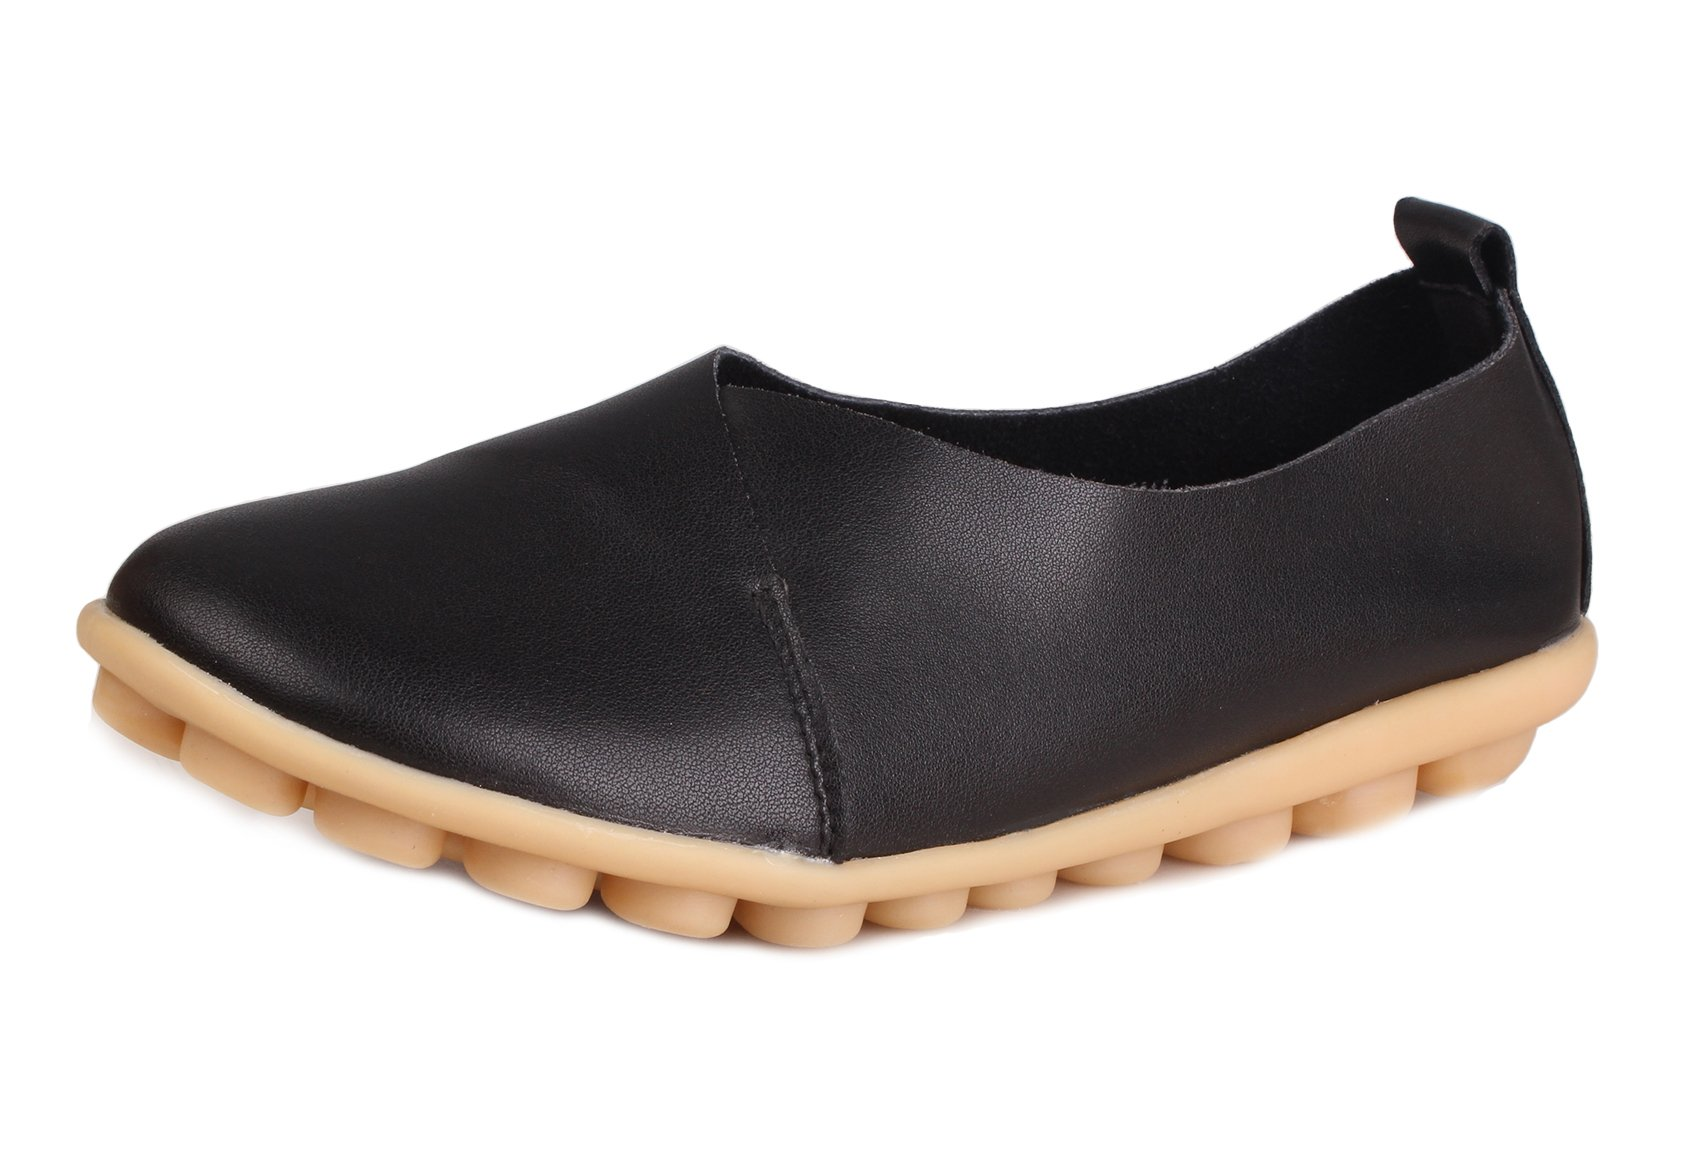 PhiFA Women's Leather Casual Loafers Flat Shoes (Buy One Size Down) Fashion Black Size 9